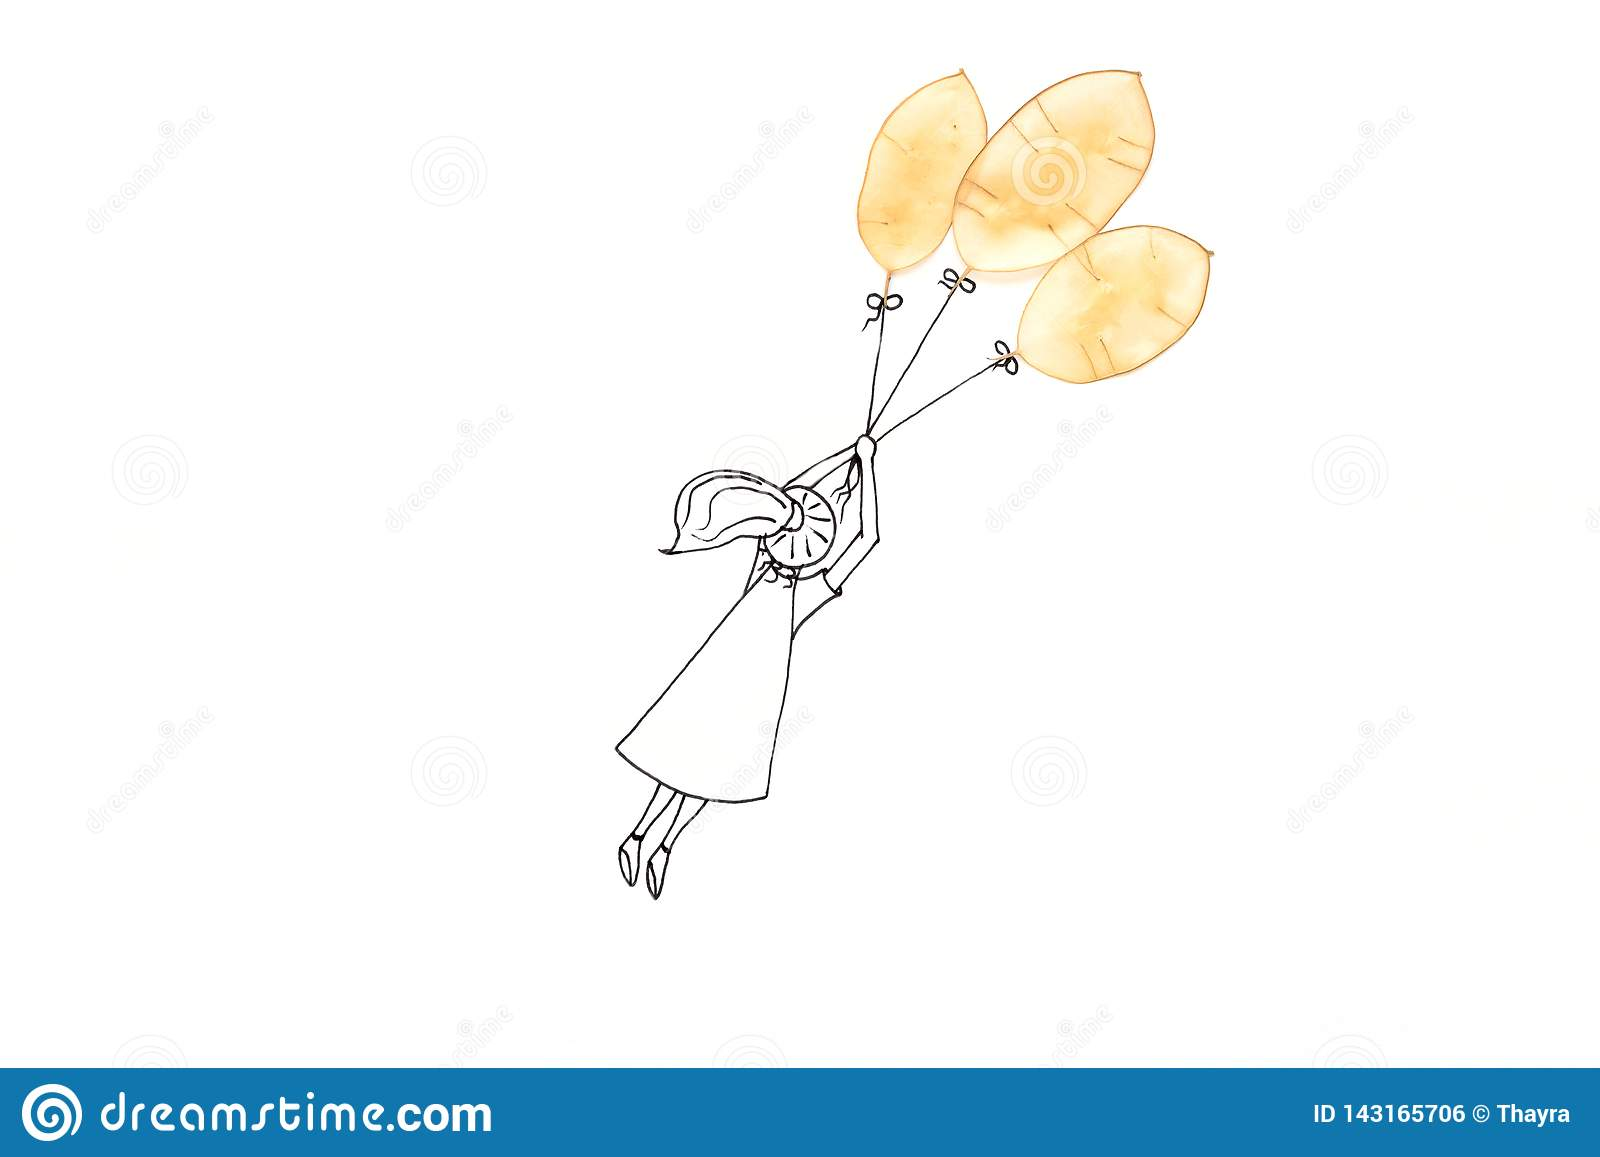 Hand drawing cute cartoon girl flying with balloon made of translucent seedpods. Minimal, creative or dreaming concept. Copy space